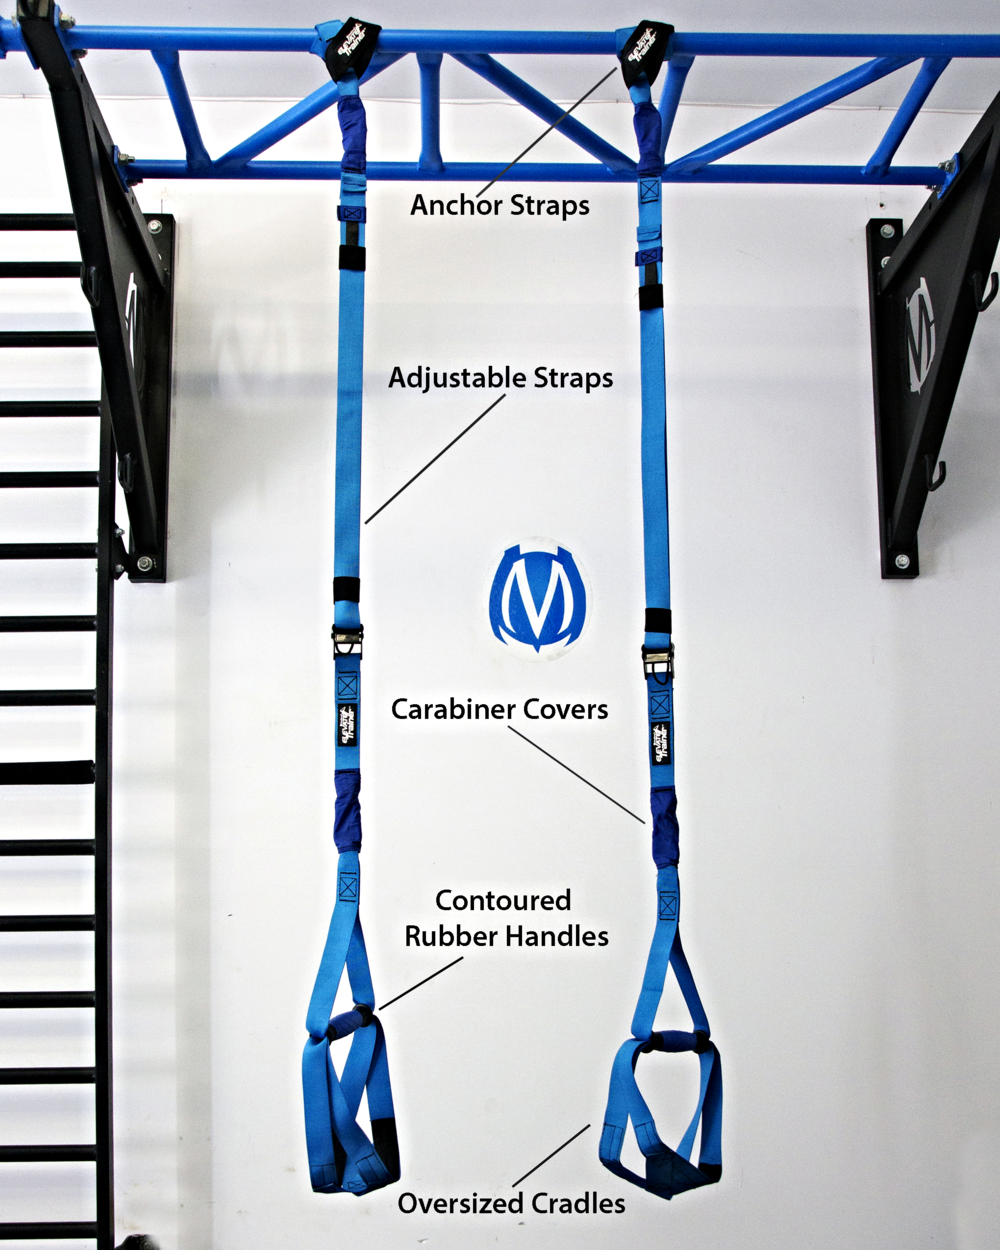 Elevate Trainer contains two independent anchor straps for attaching to a pull-up bar or other secure object above head. The anchor straps connect two adjustable straps to accommodate length changes needed. The two lower handle attachments offer a dual lower strap and cross webbing to create a wider cradle for holding feet and forearms when performing suspended training exercises.